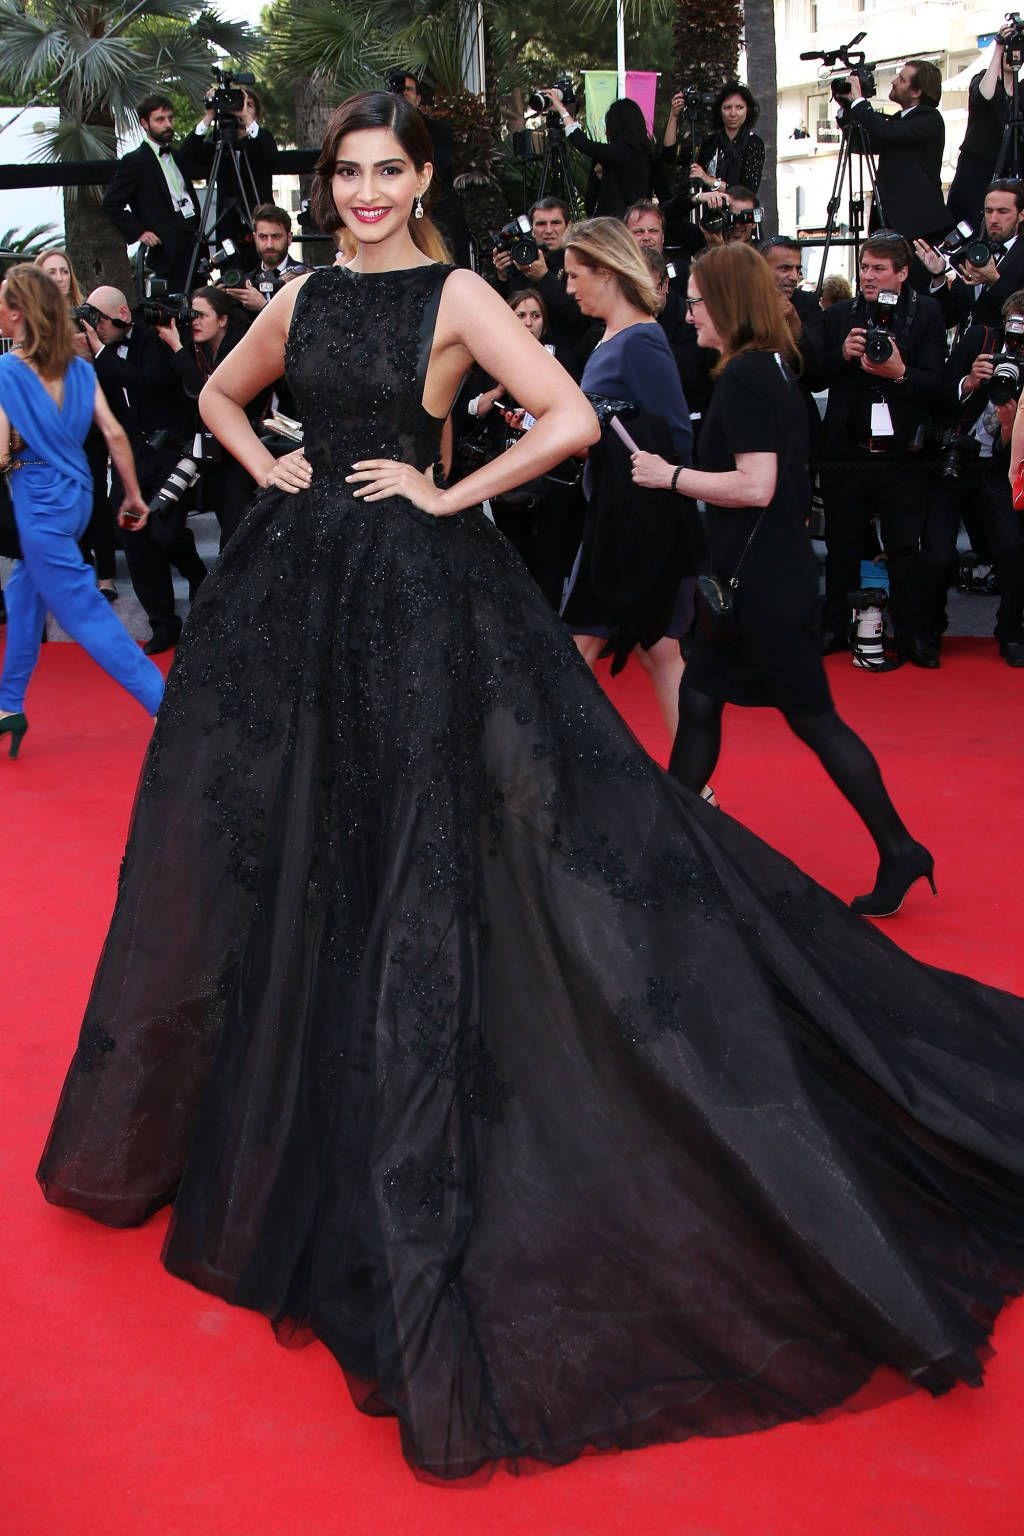 Sonam Kapoor in Elie Saab. Cannes Fashion - Red Carpet Dresses at Cannes  2014 - Harper s BAZAAR a92c18430